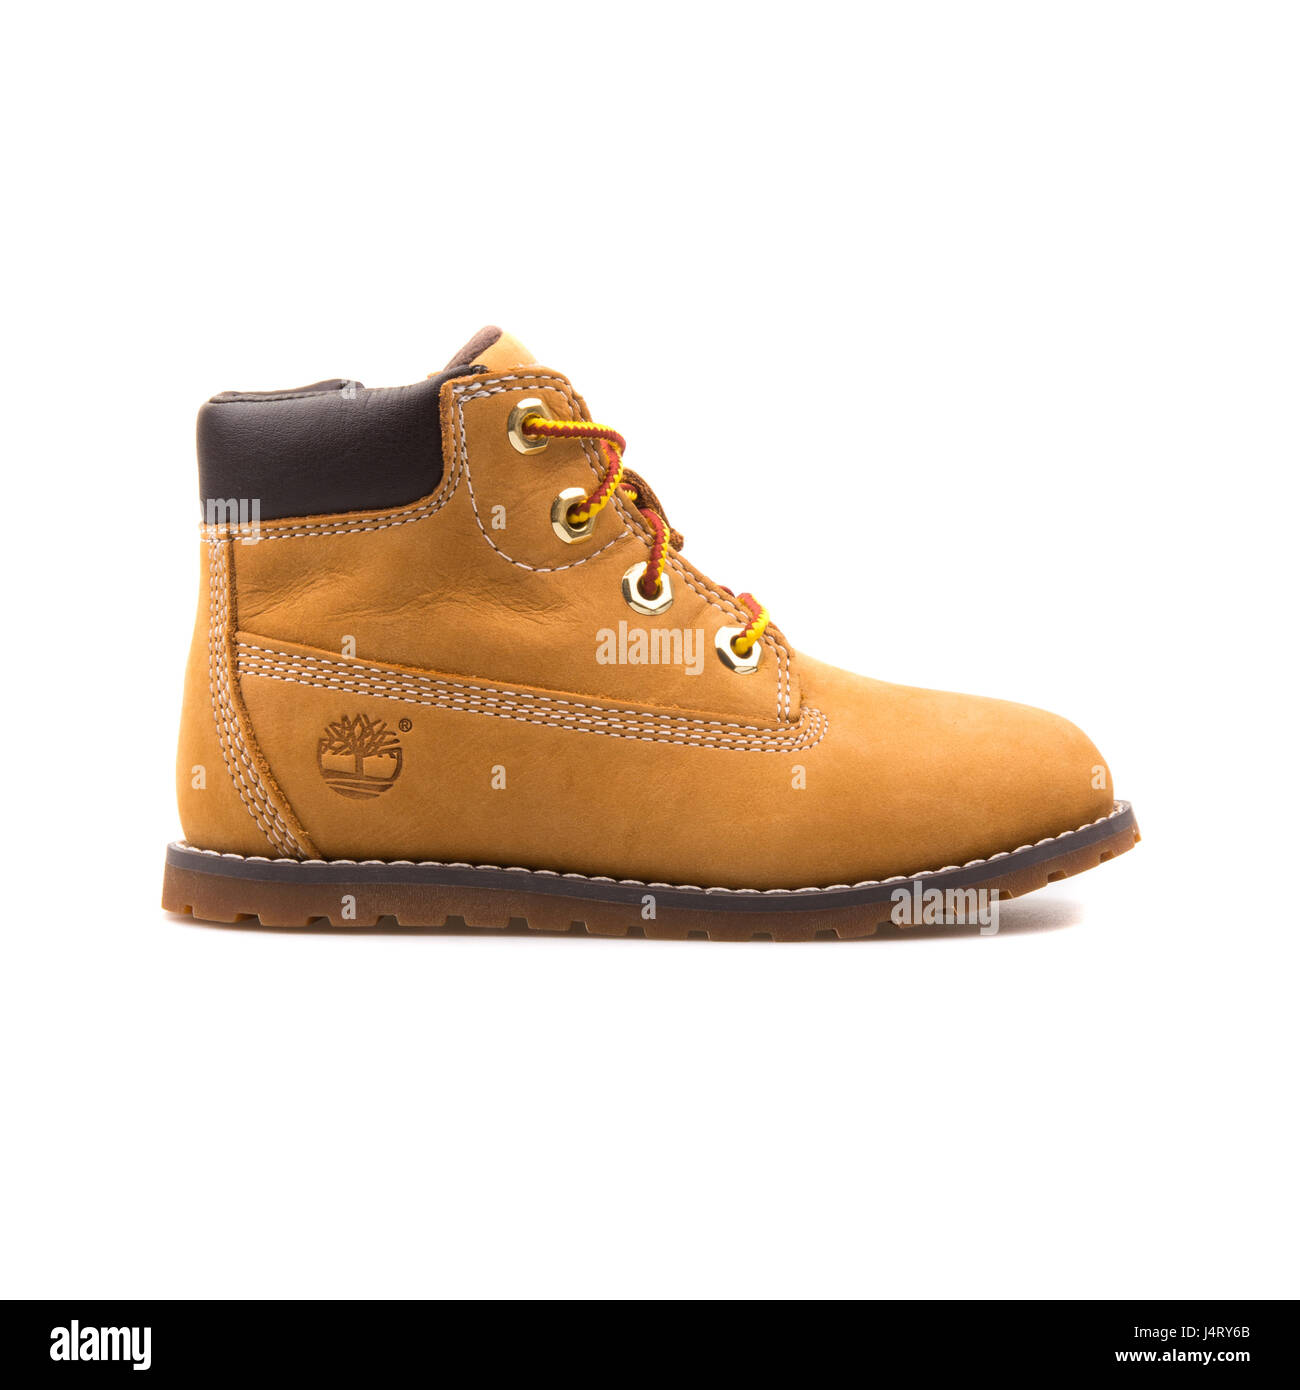 1f72e665fa79 Timberland Pokey Pine 6in Boot Wheat Toddler s Leather - A125Q Stock ...